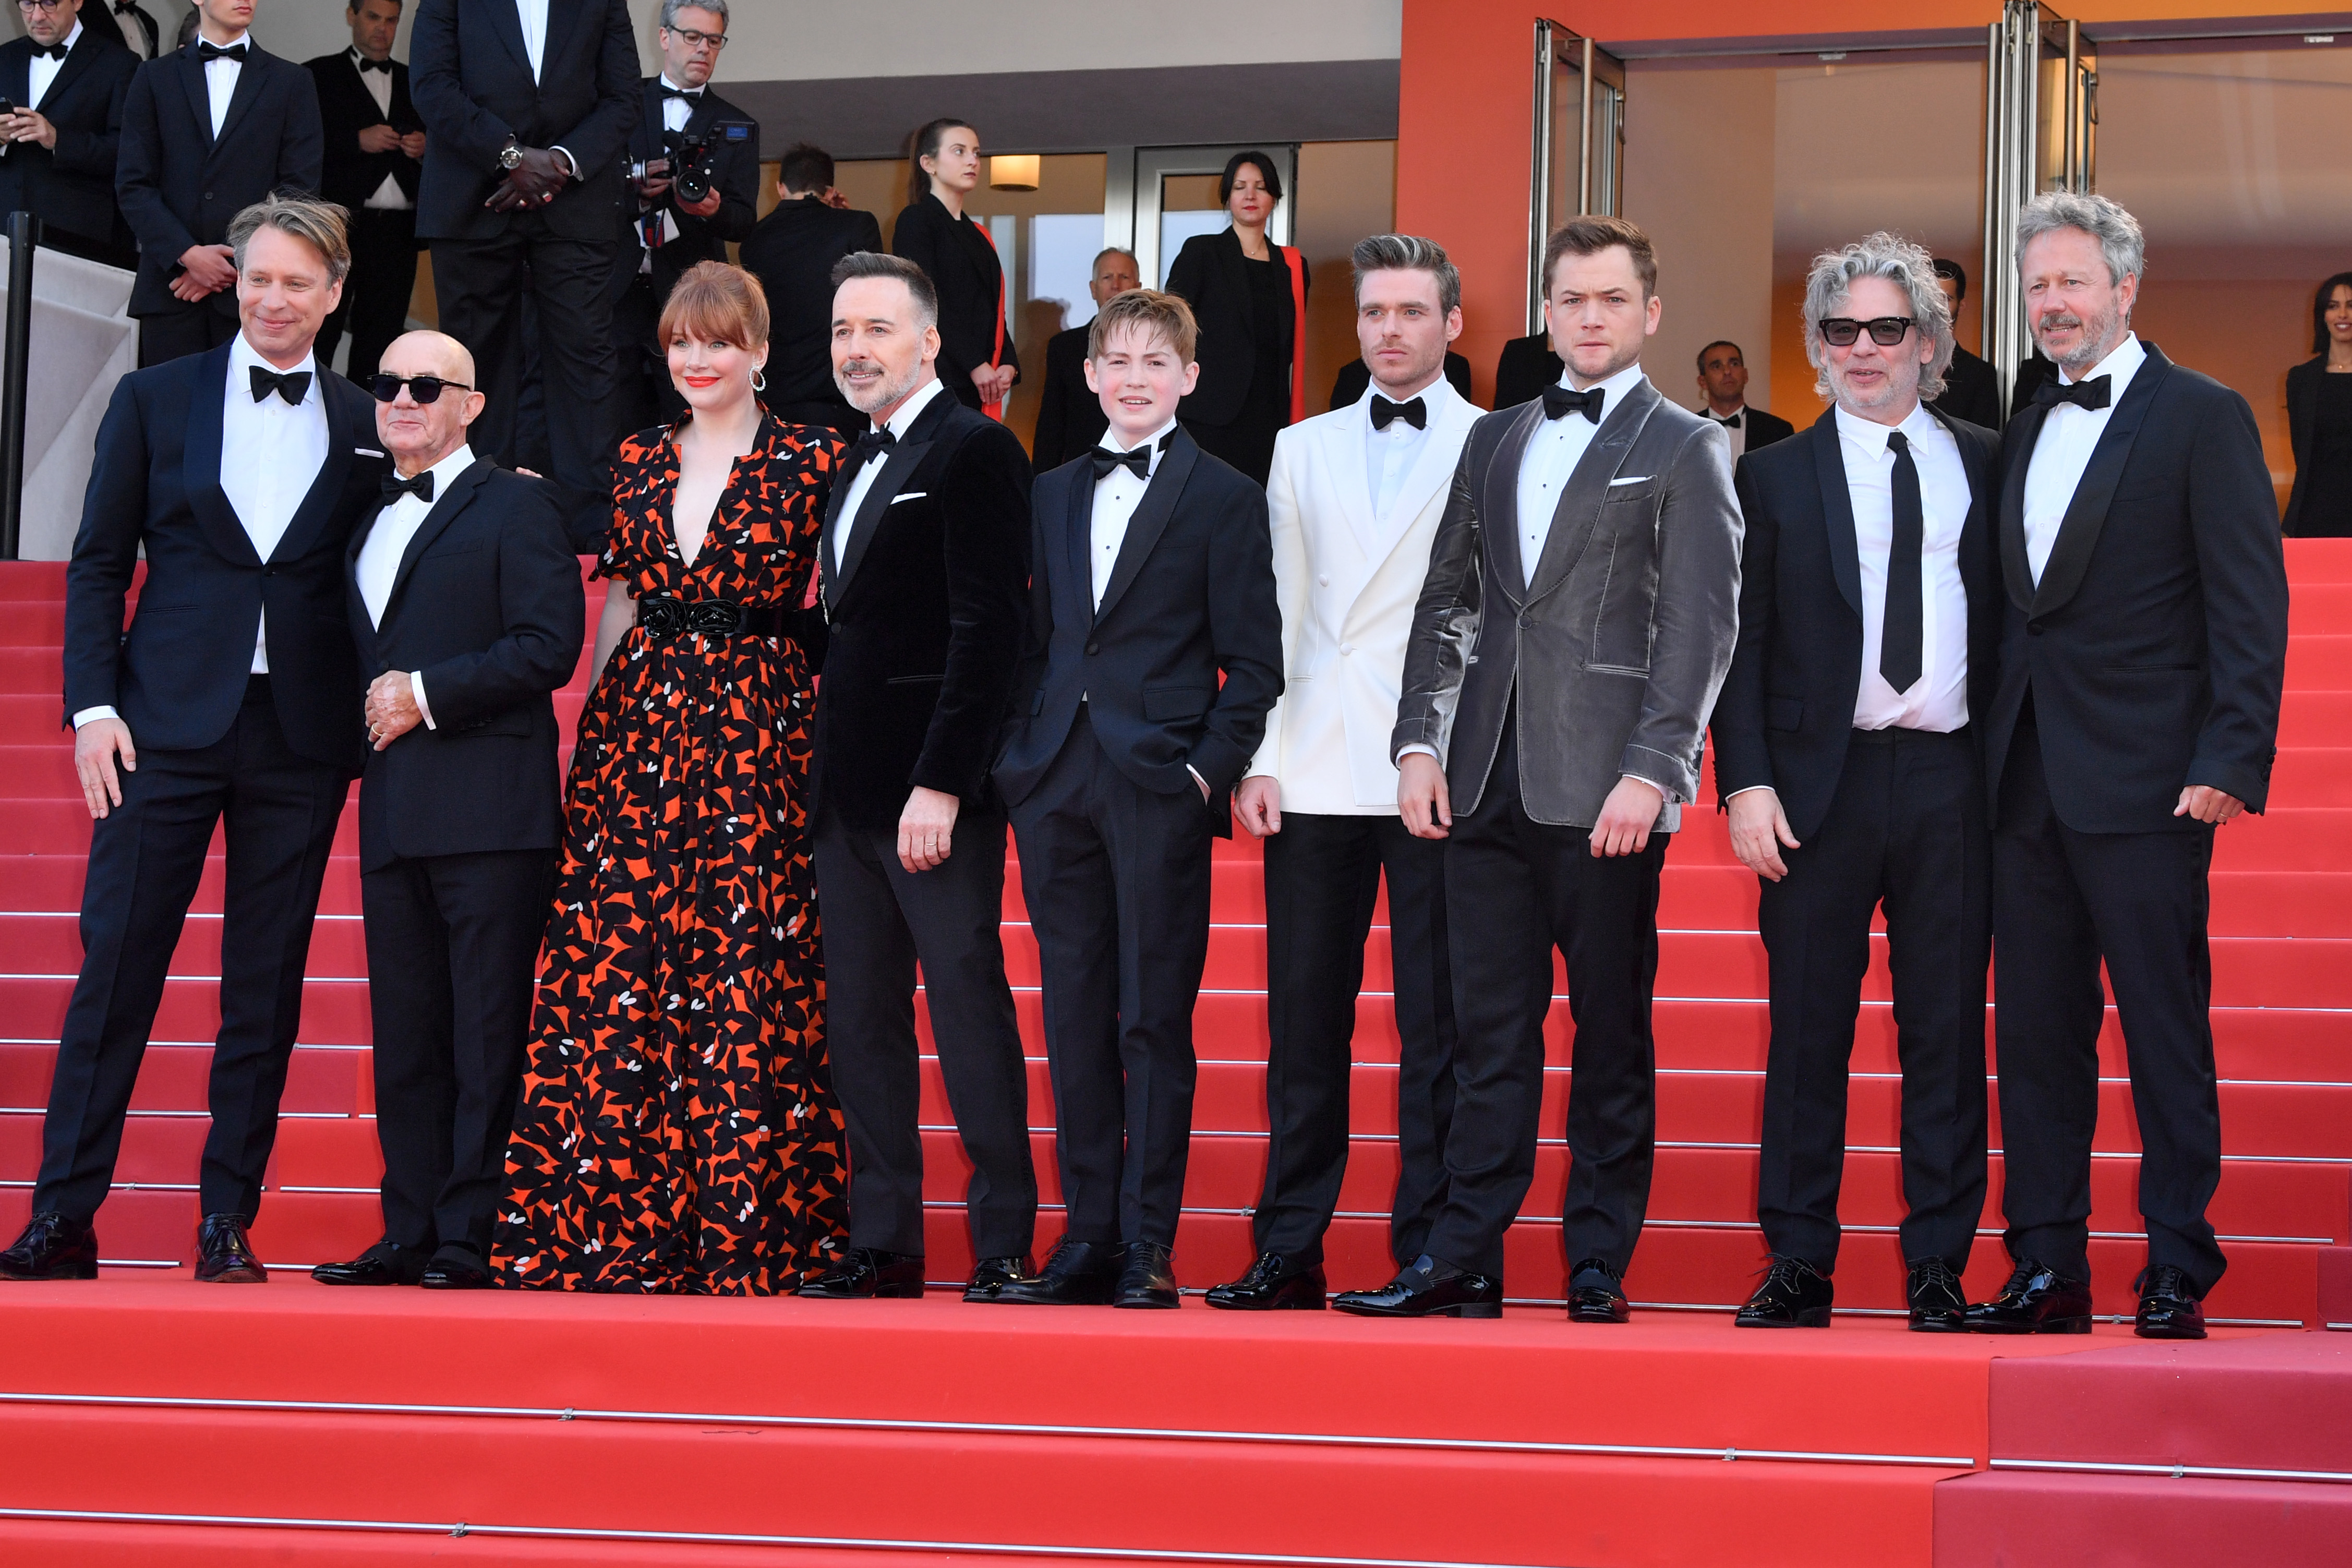 Giles Martin, Bernie Taupin, Bryce Dallas Howard, David Furnish, Kit Connor, Richard Madden, Taron Egerton and Dexter Fletcher'Rocketman' premiere, 72nd Cannes Film Festival, France - 16 May 2019